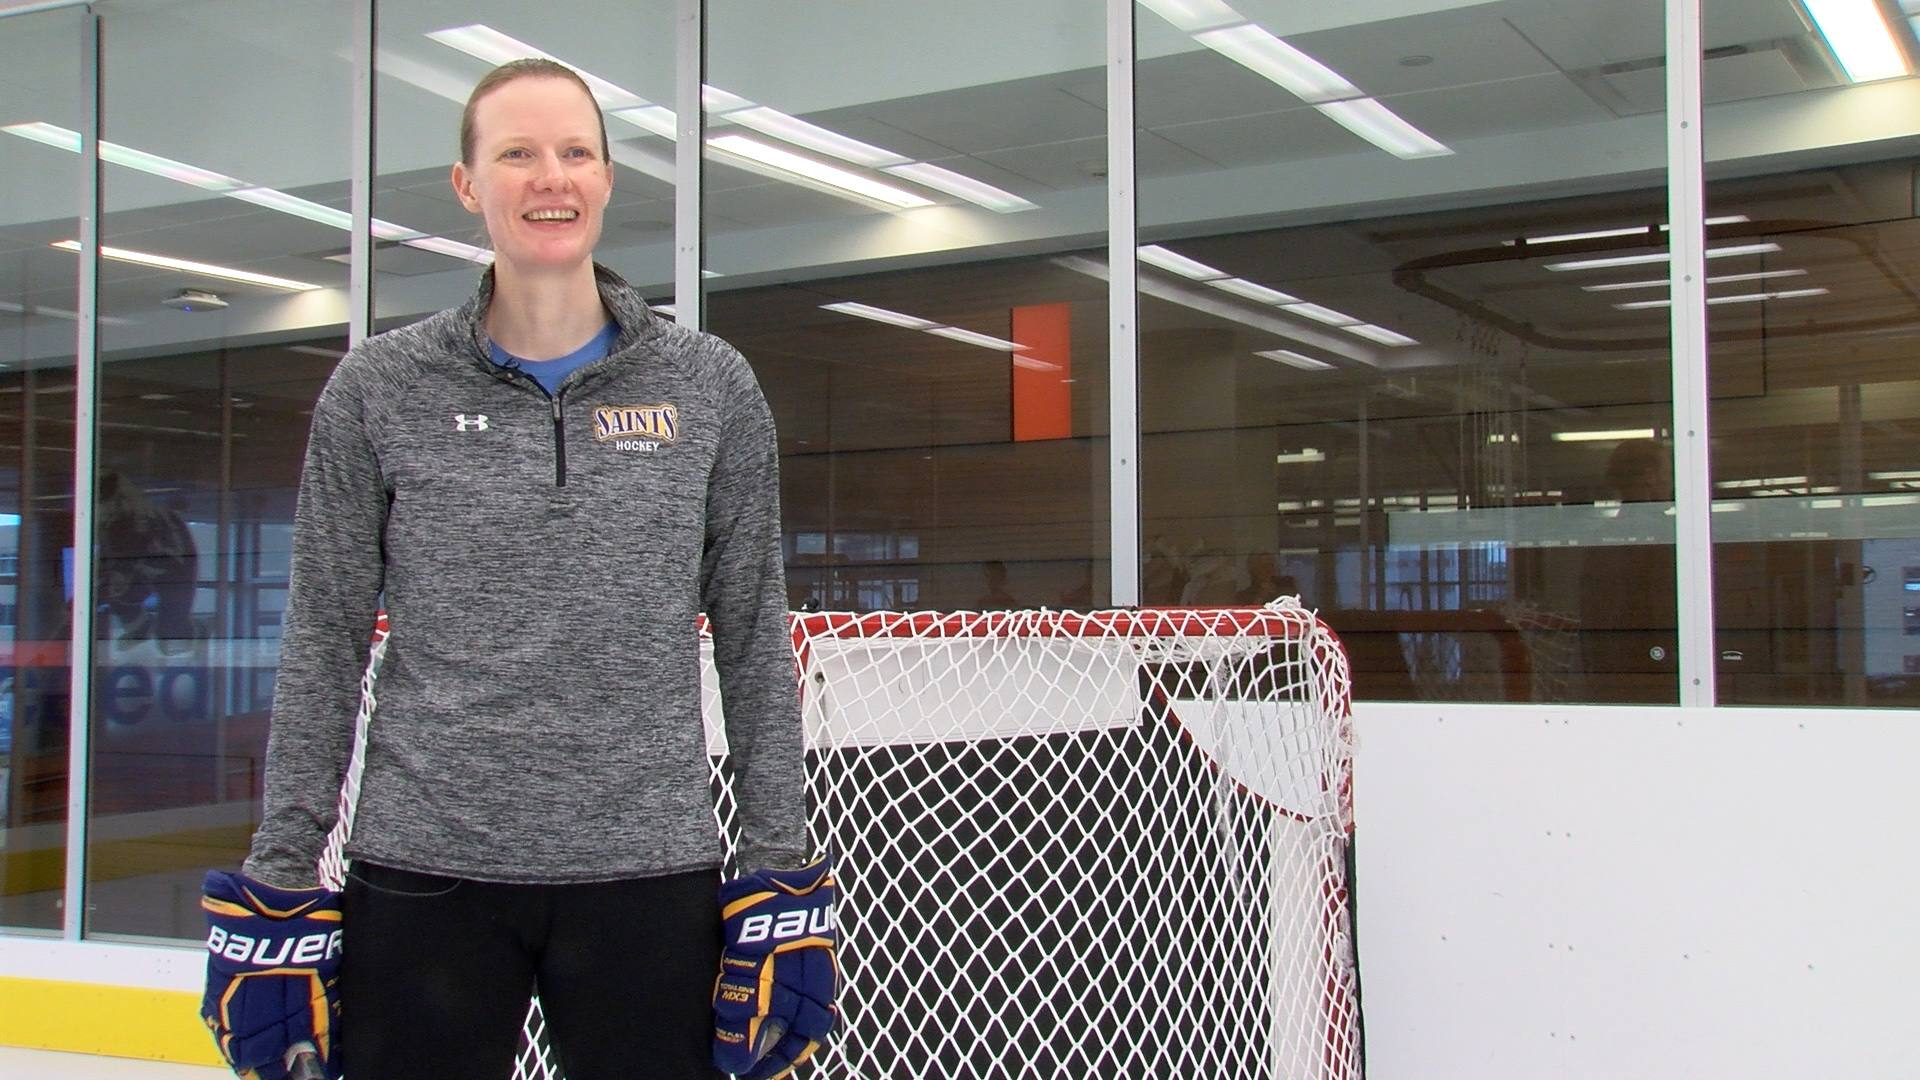 Julianne Vasichek standing in front of a hockey goal net.